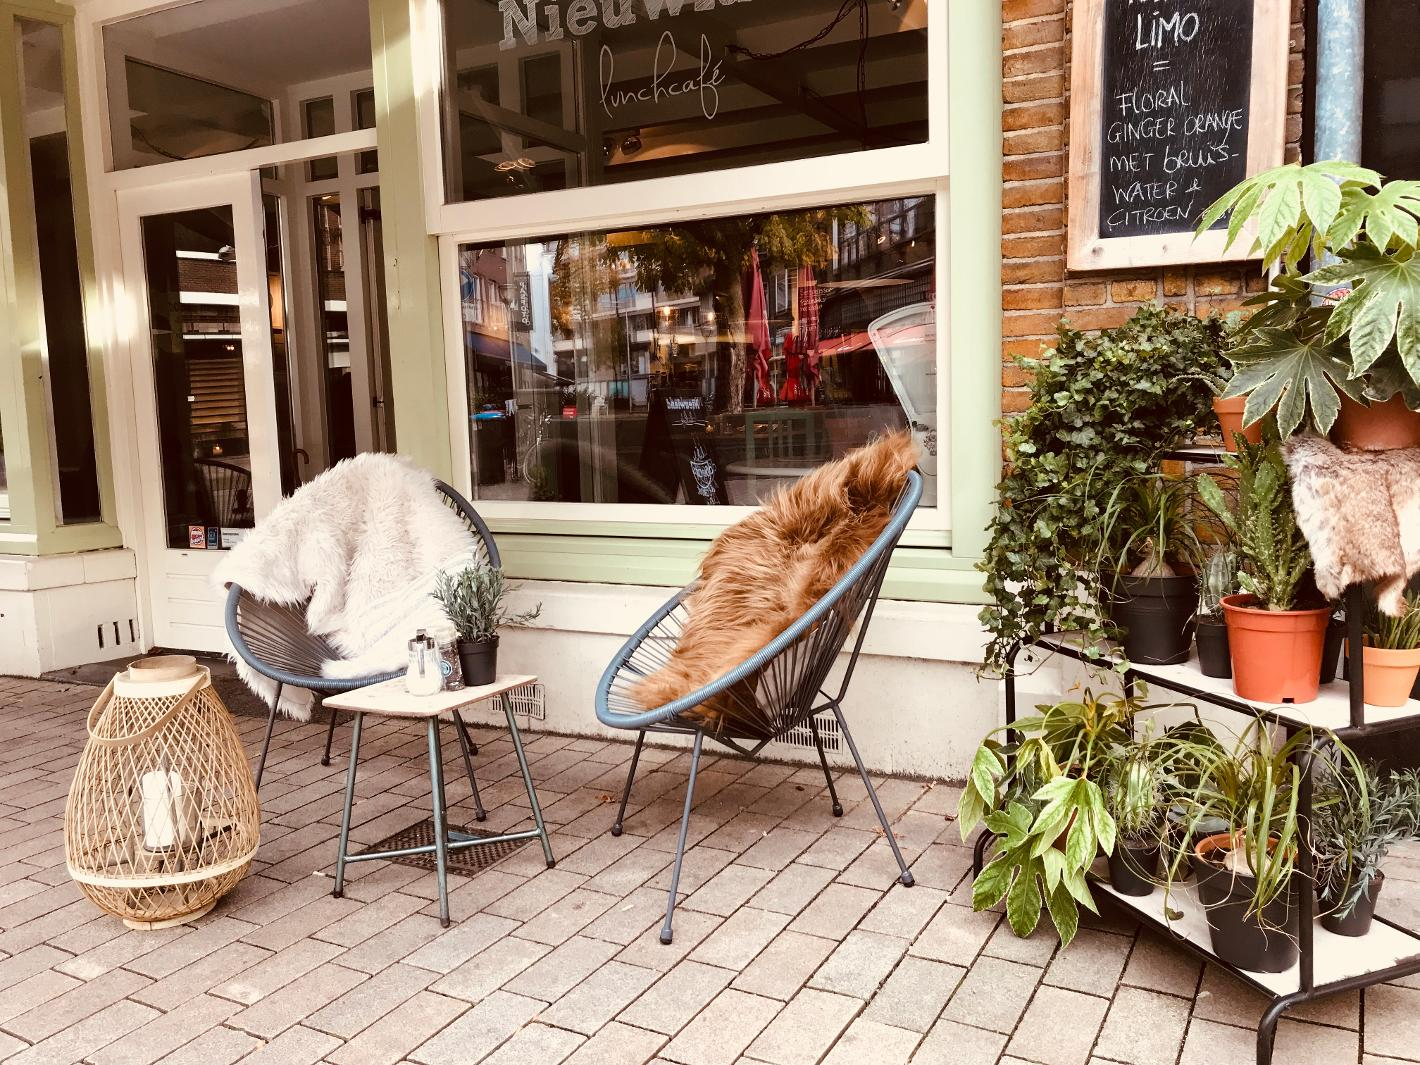 Photo Lunchcafé Nieuwland in Tilburg, Eat & drink, Coffee, tea & cakes, Lunch - #6